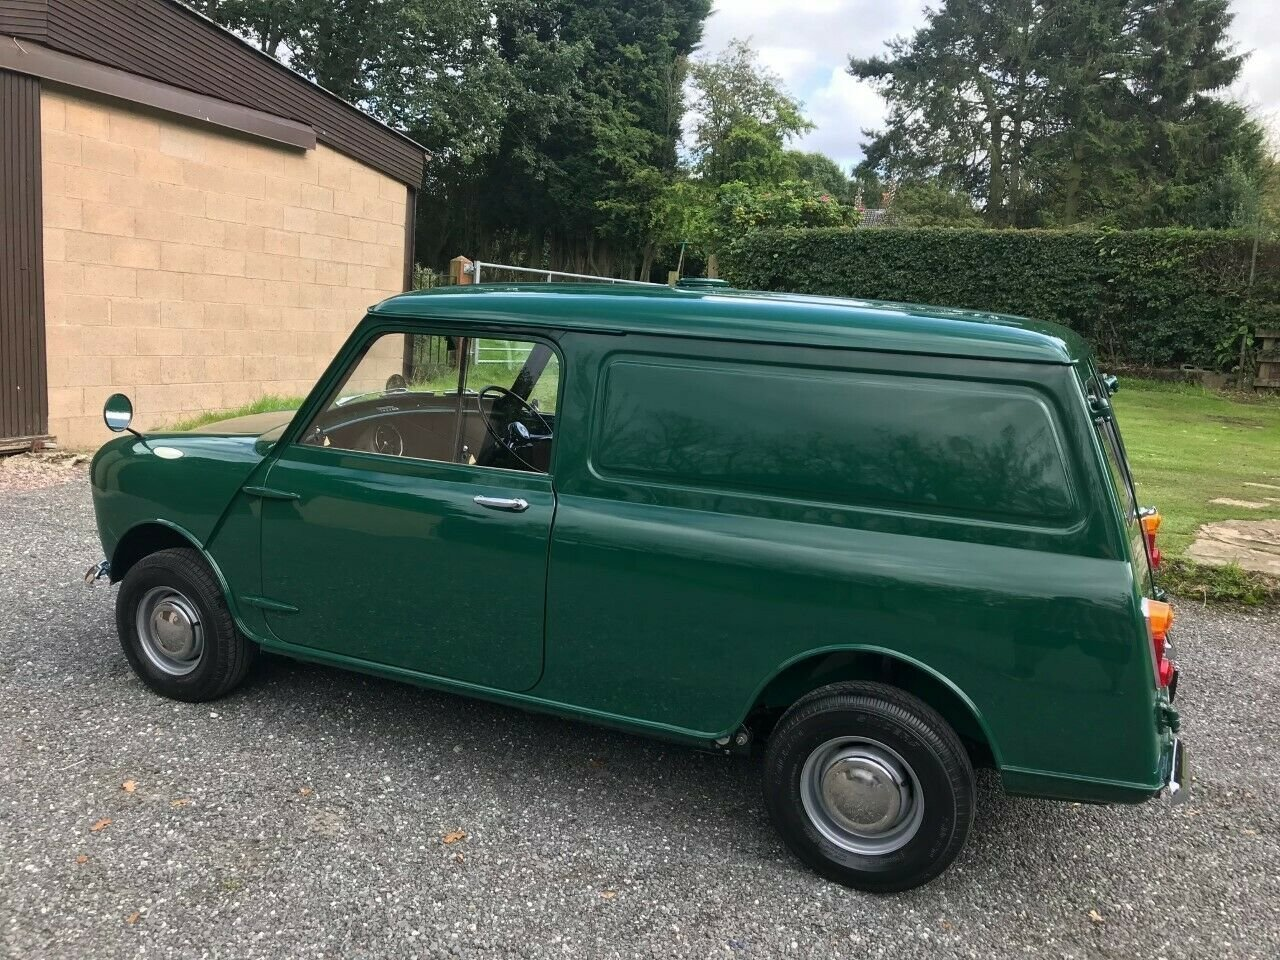 1969 MORRIS MINI VAN GREEN 17K STUNNING CONCOURS WINNER!!! For Sale (picture 2 of 6)